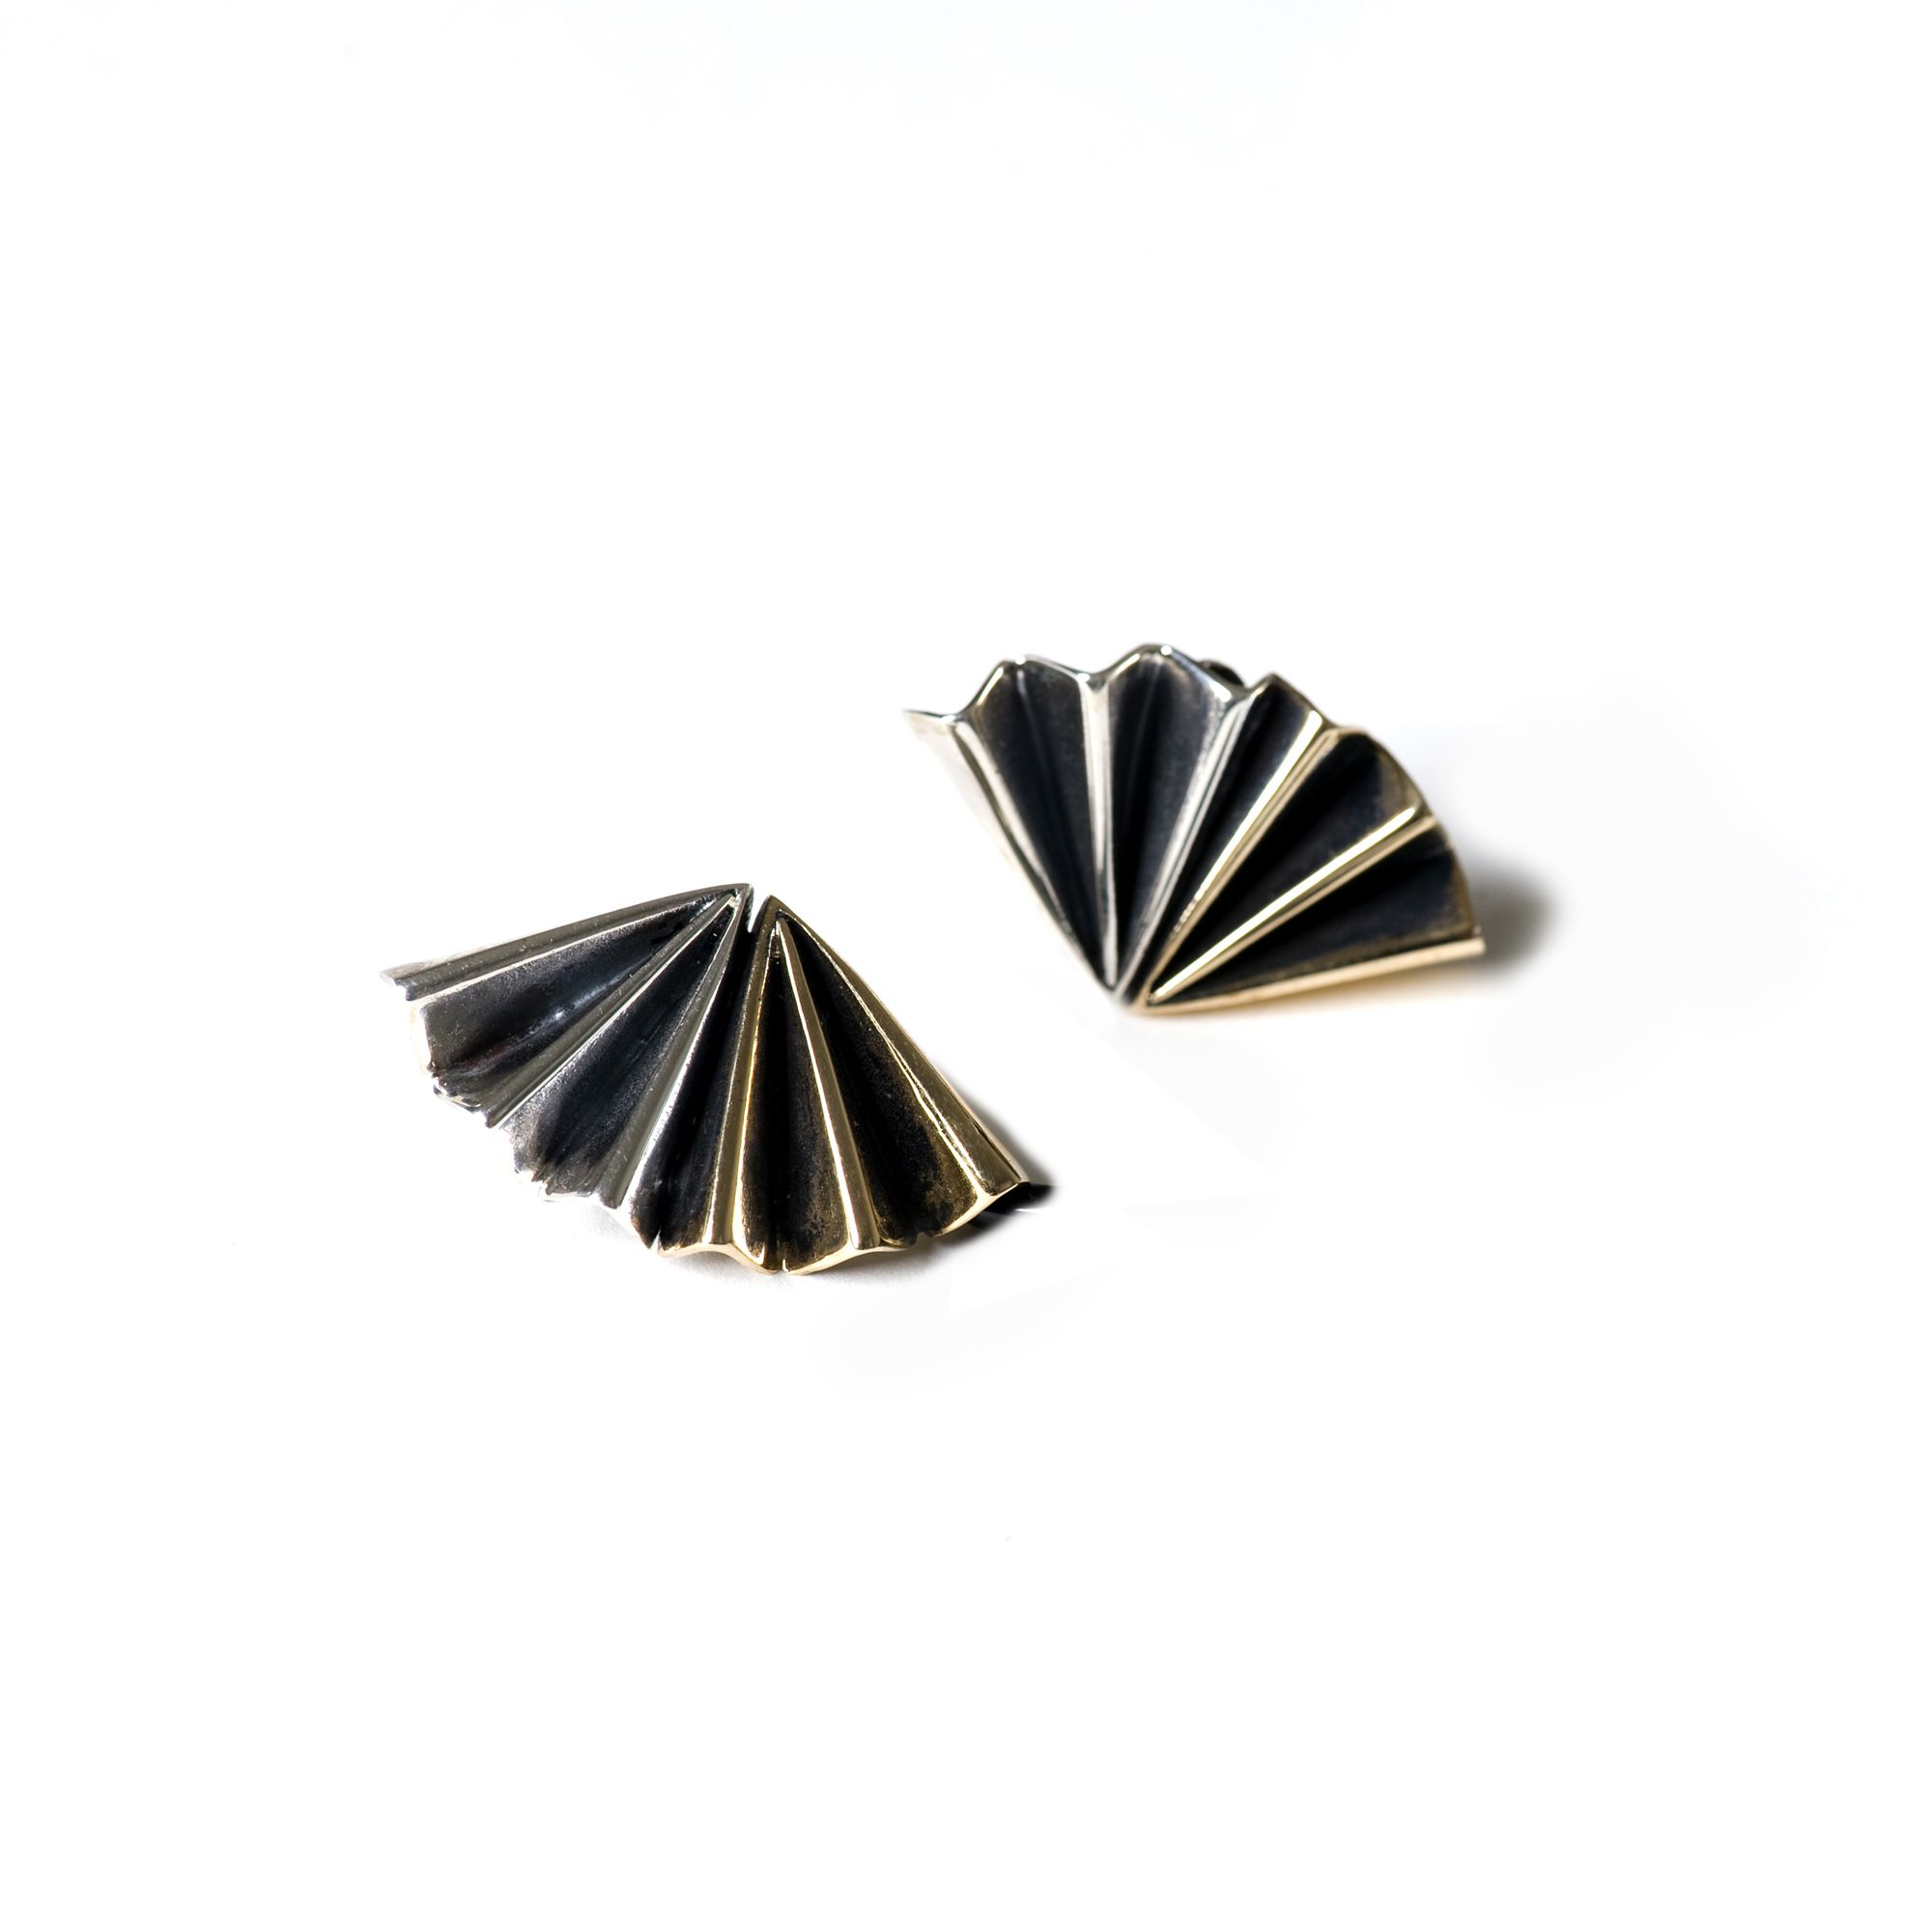 Bicolor 'fan' earrings Earrings in silver and bronze